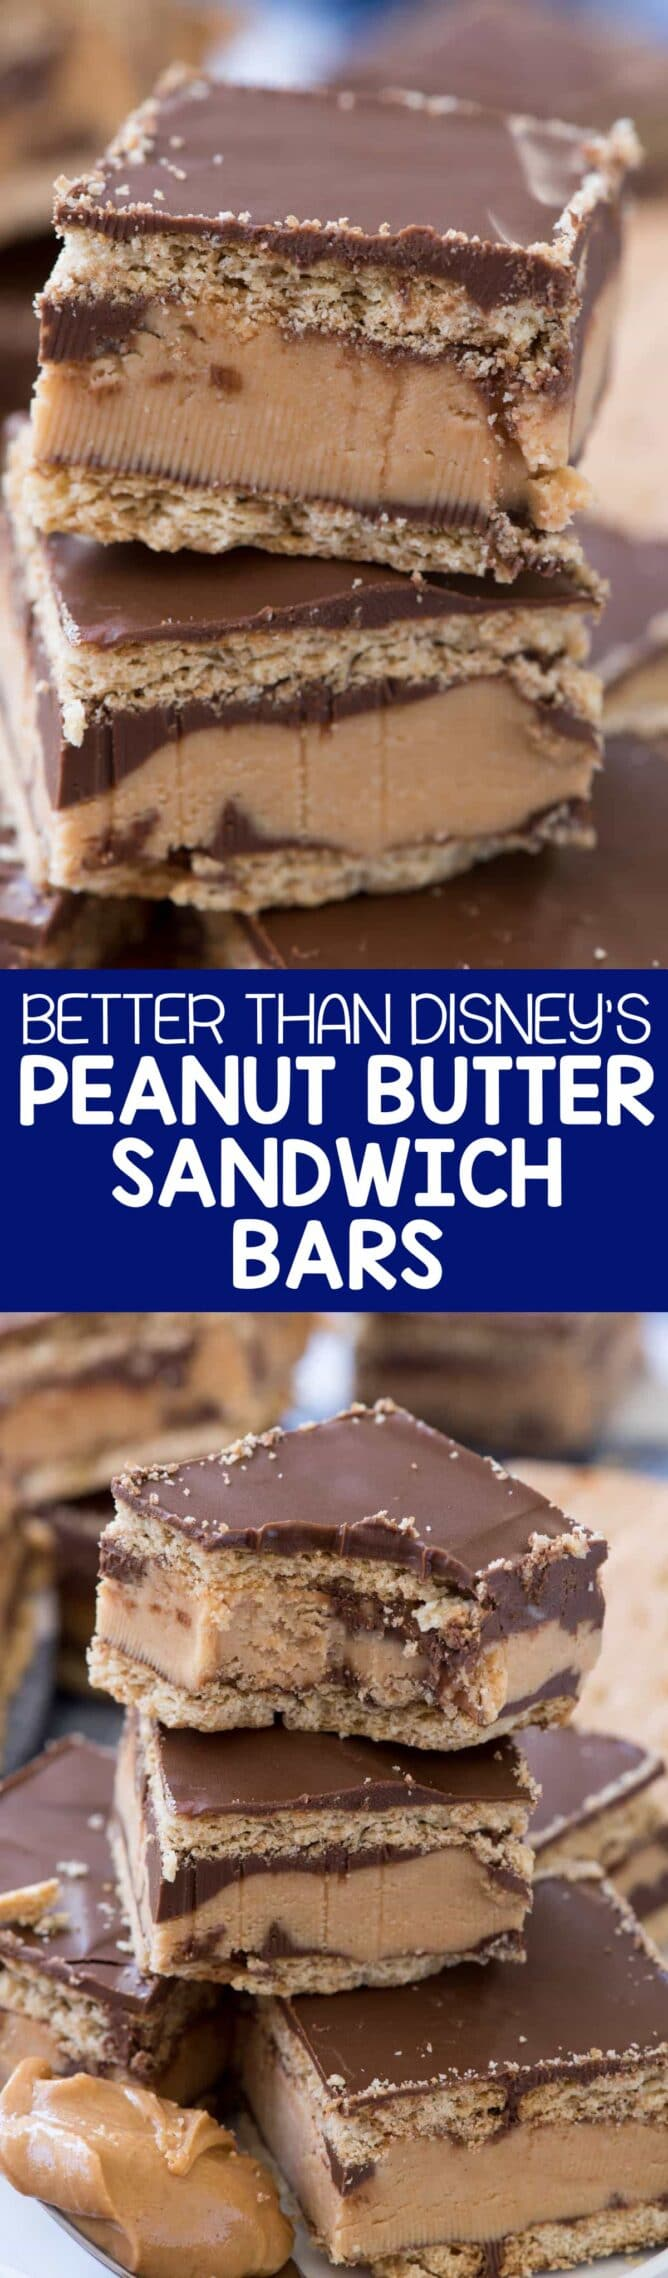 Disneyland Peanut Butter Sandwich Bars collage photos- this no bake bar cookie is better than the Disneyland Peanut Butter Sandwich. Graham crackers sandwiched with a thick peanut butter layer and lots of chocolate!